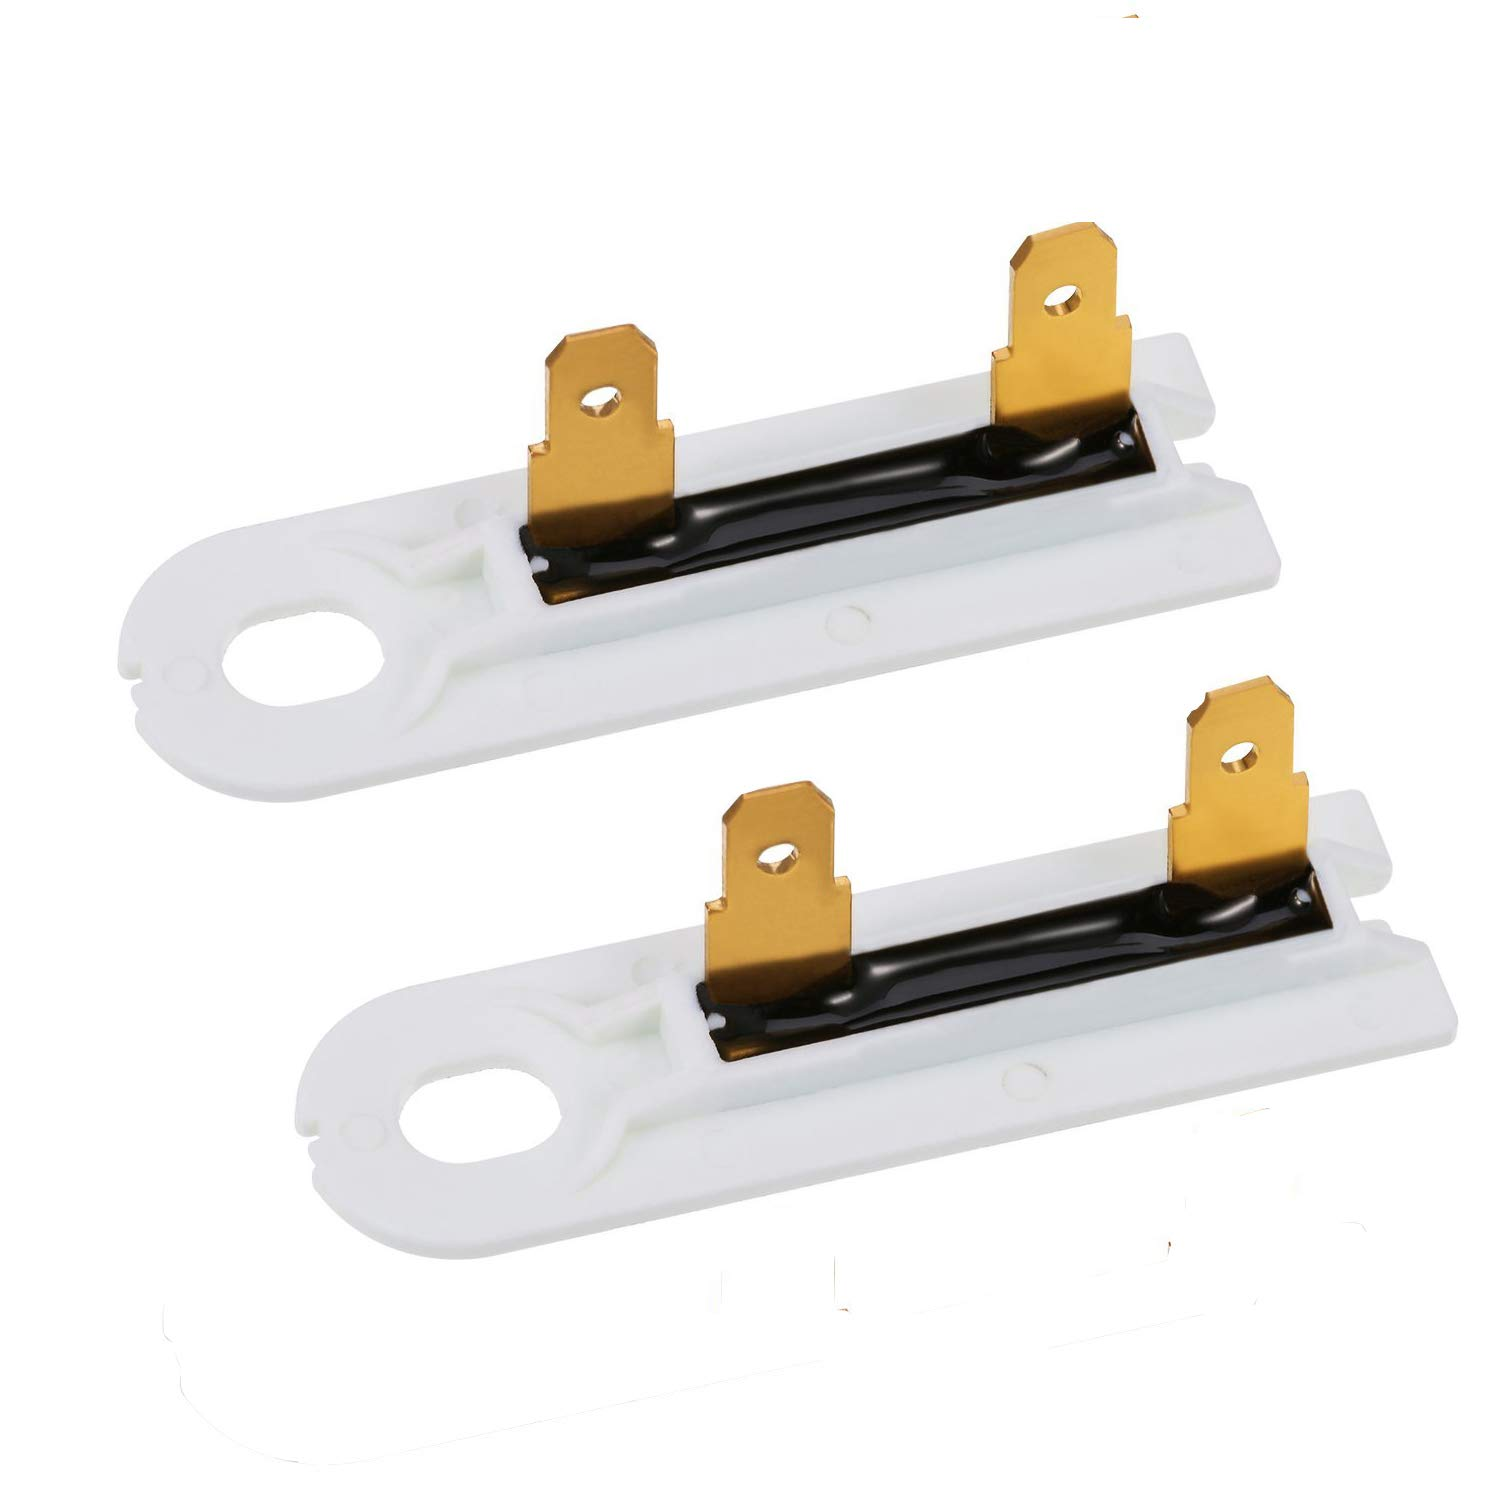 3392519 Dryer Thermal Fuse Thermofuse Replacement Part Compatible for Whirlpool, Kenmore, KitchenAid, Roper,Admiral, Estate, Inglis, Crosley, Maytag, Amana, Magic Chef- PACK OF 2